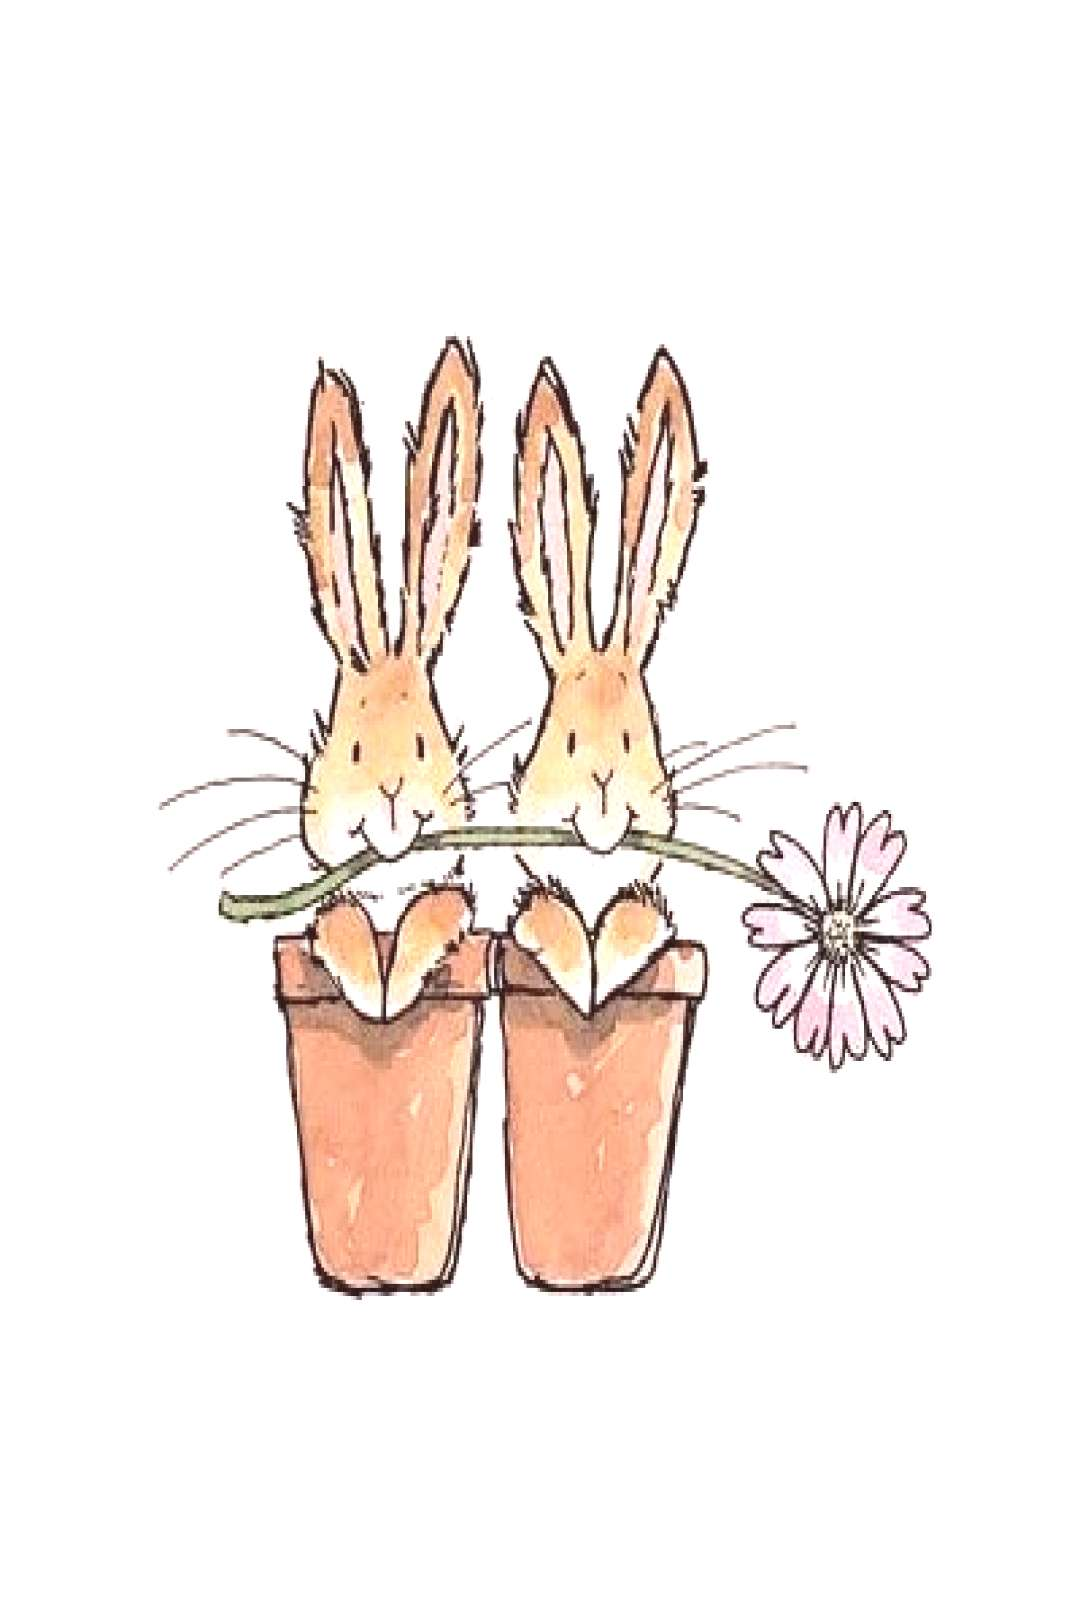 Cute Bunnies in Flower Pots illustration#bunnies illustration cute witch